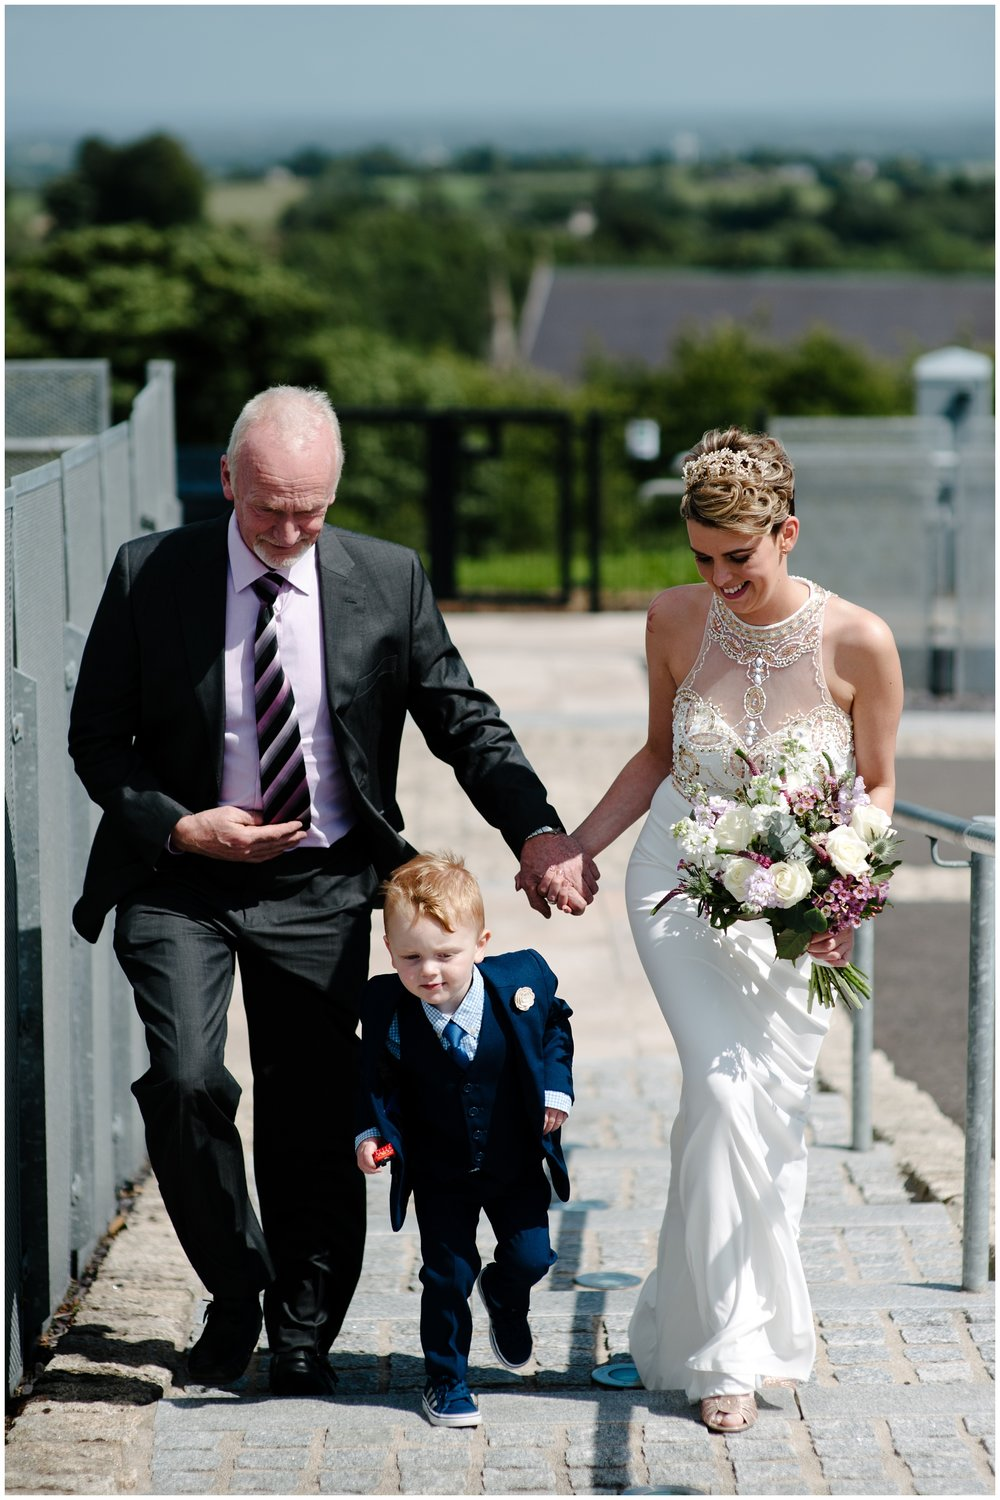 christina_stephen_hill_of_the_oneill_dungannon_wedding_jude_browne_photography_0011.jpg